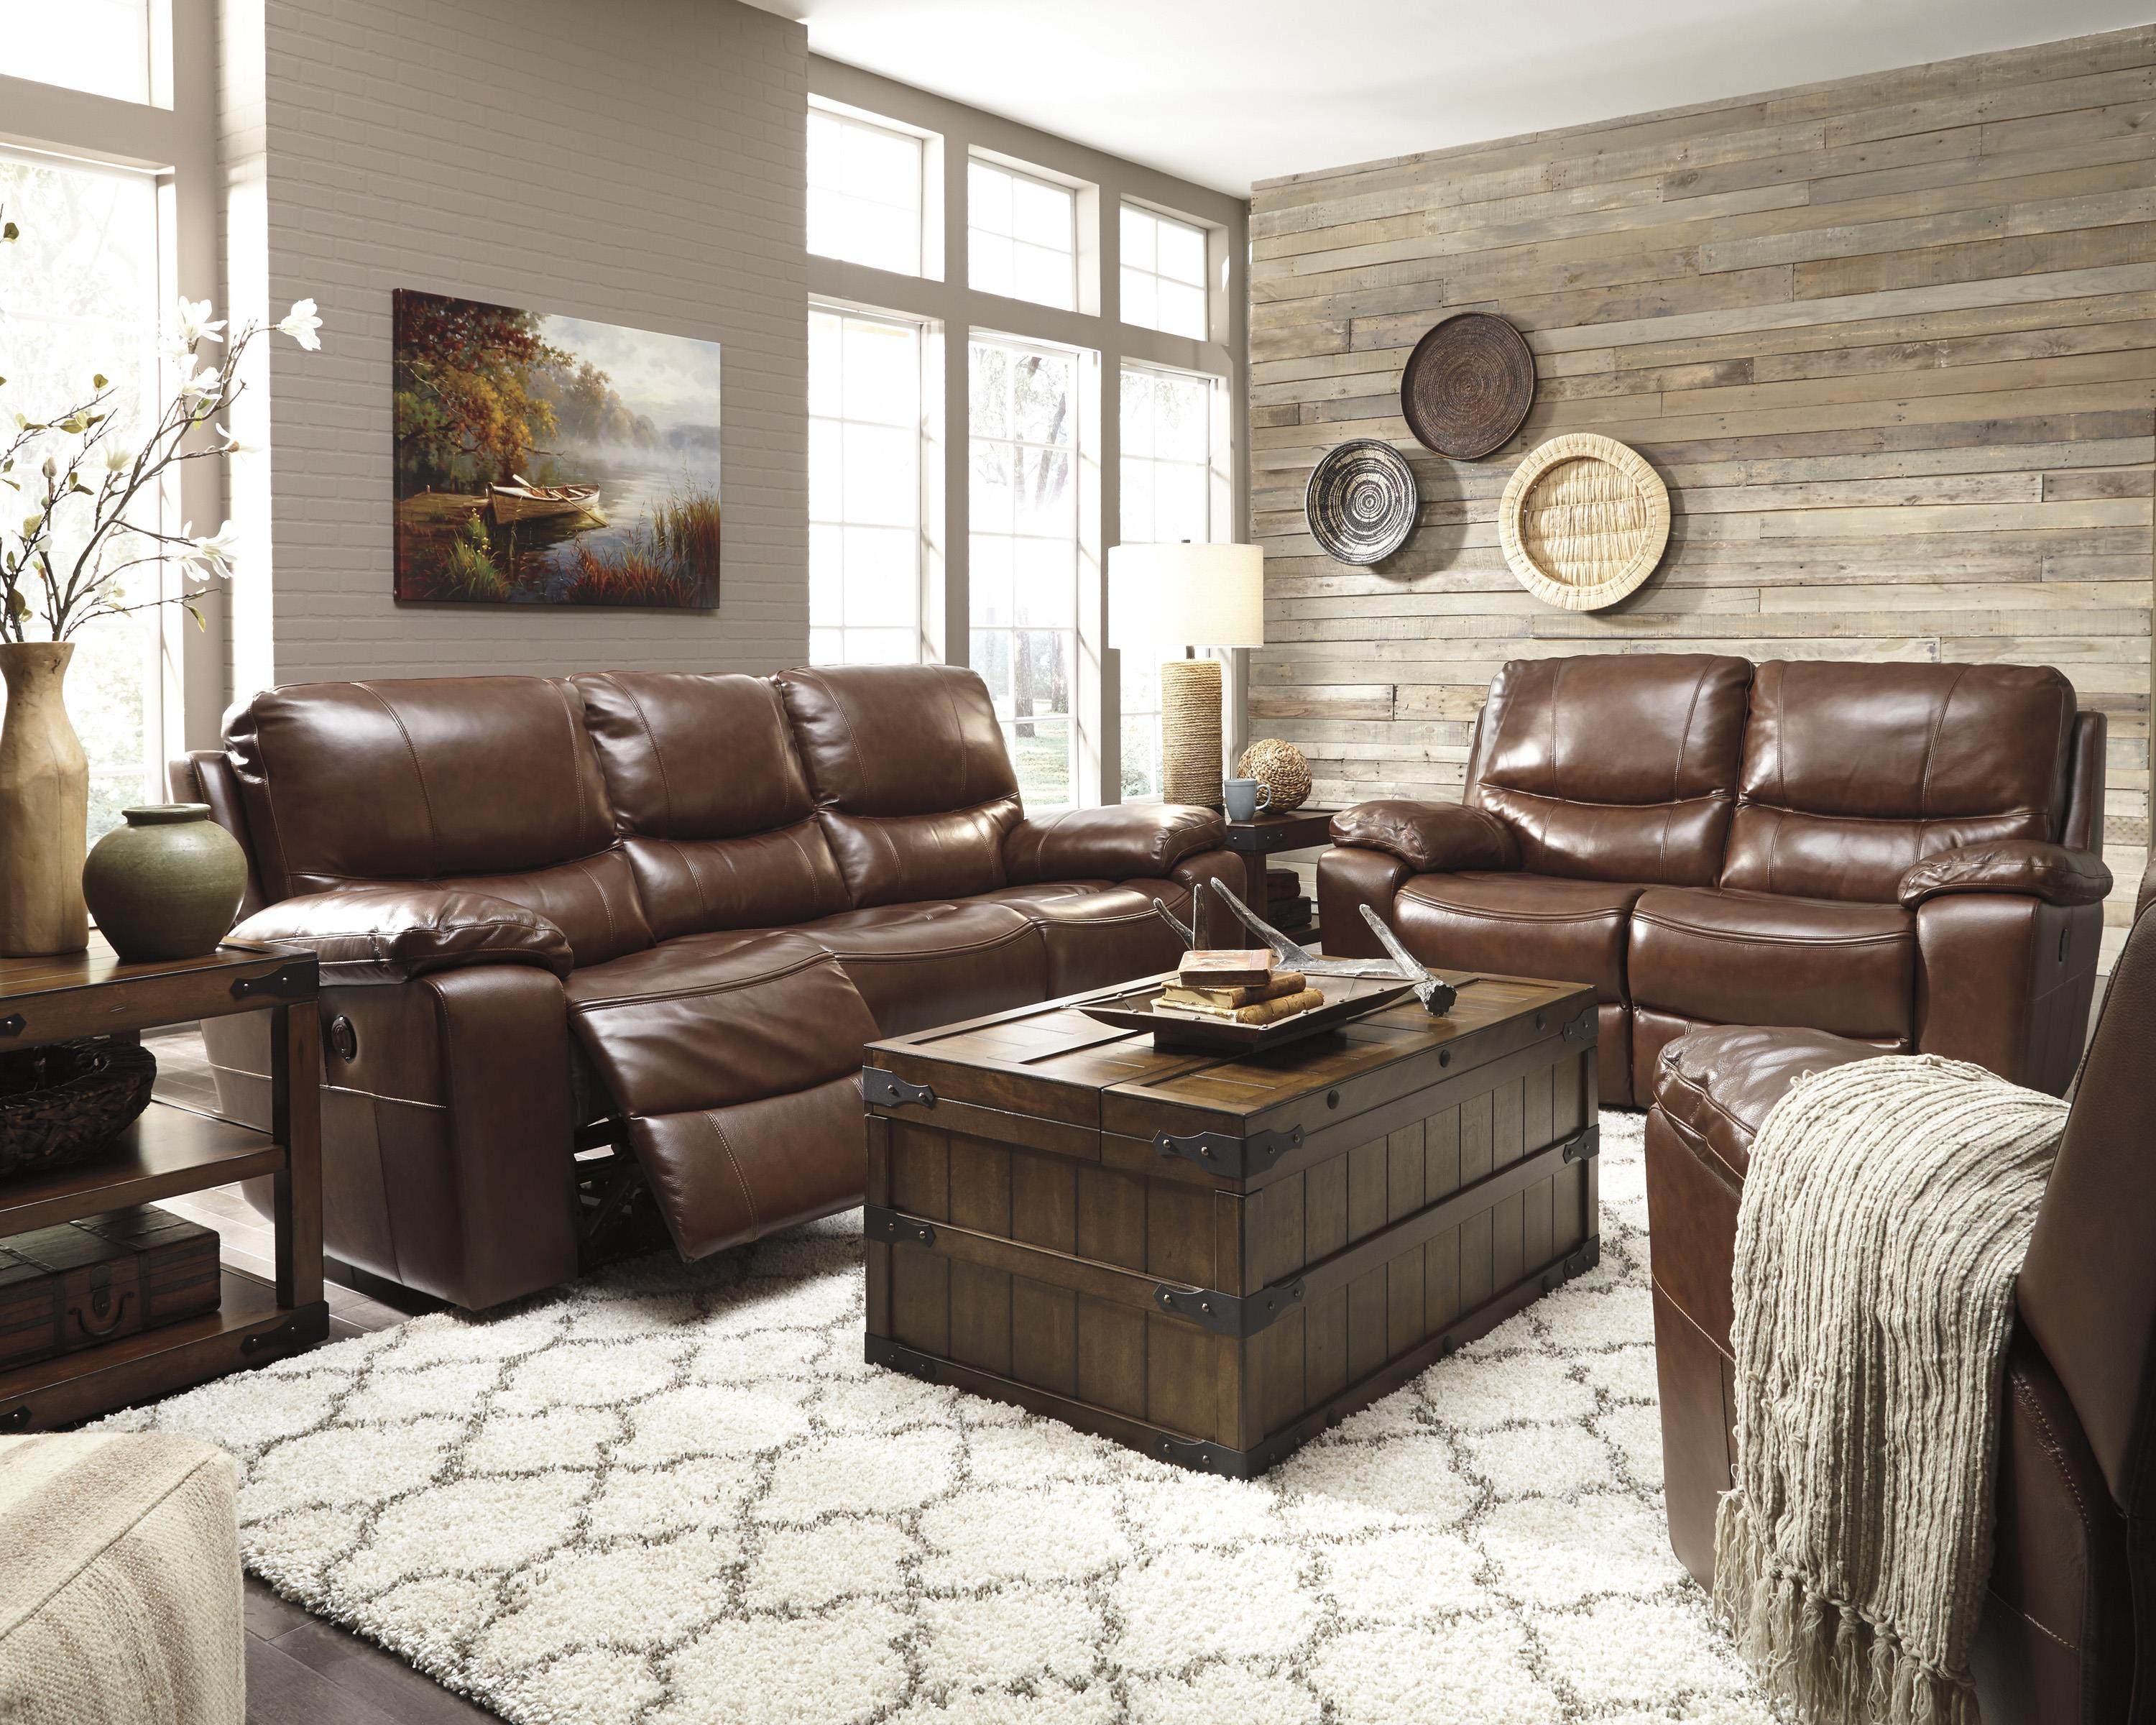 Signature Design by Ashley Panache Reclining Living Room Group - Item Number: U72900 Living Room Group 4